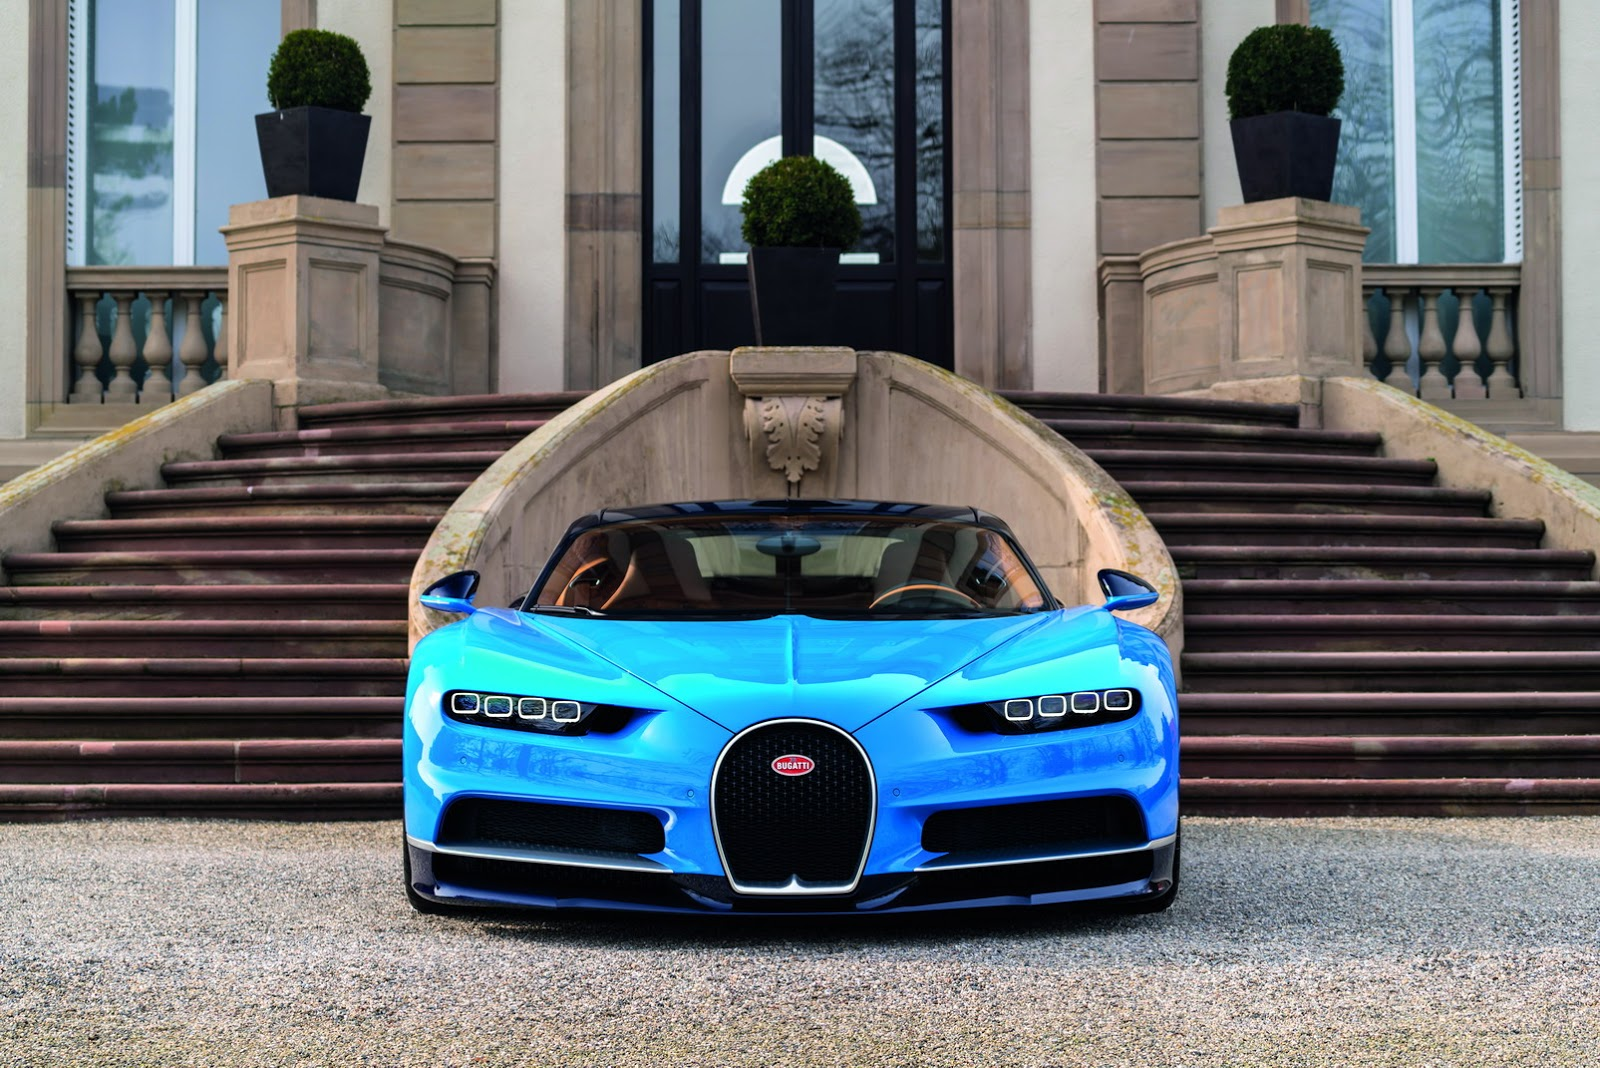 Bugatti Chiron In Pakistan >> Bugatti Chiron 2016 - Dark-Cars Wallpapers